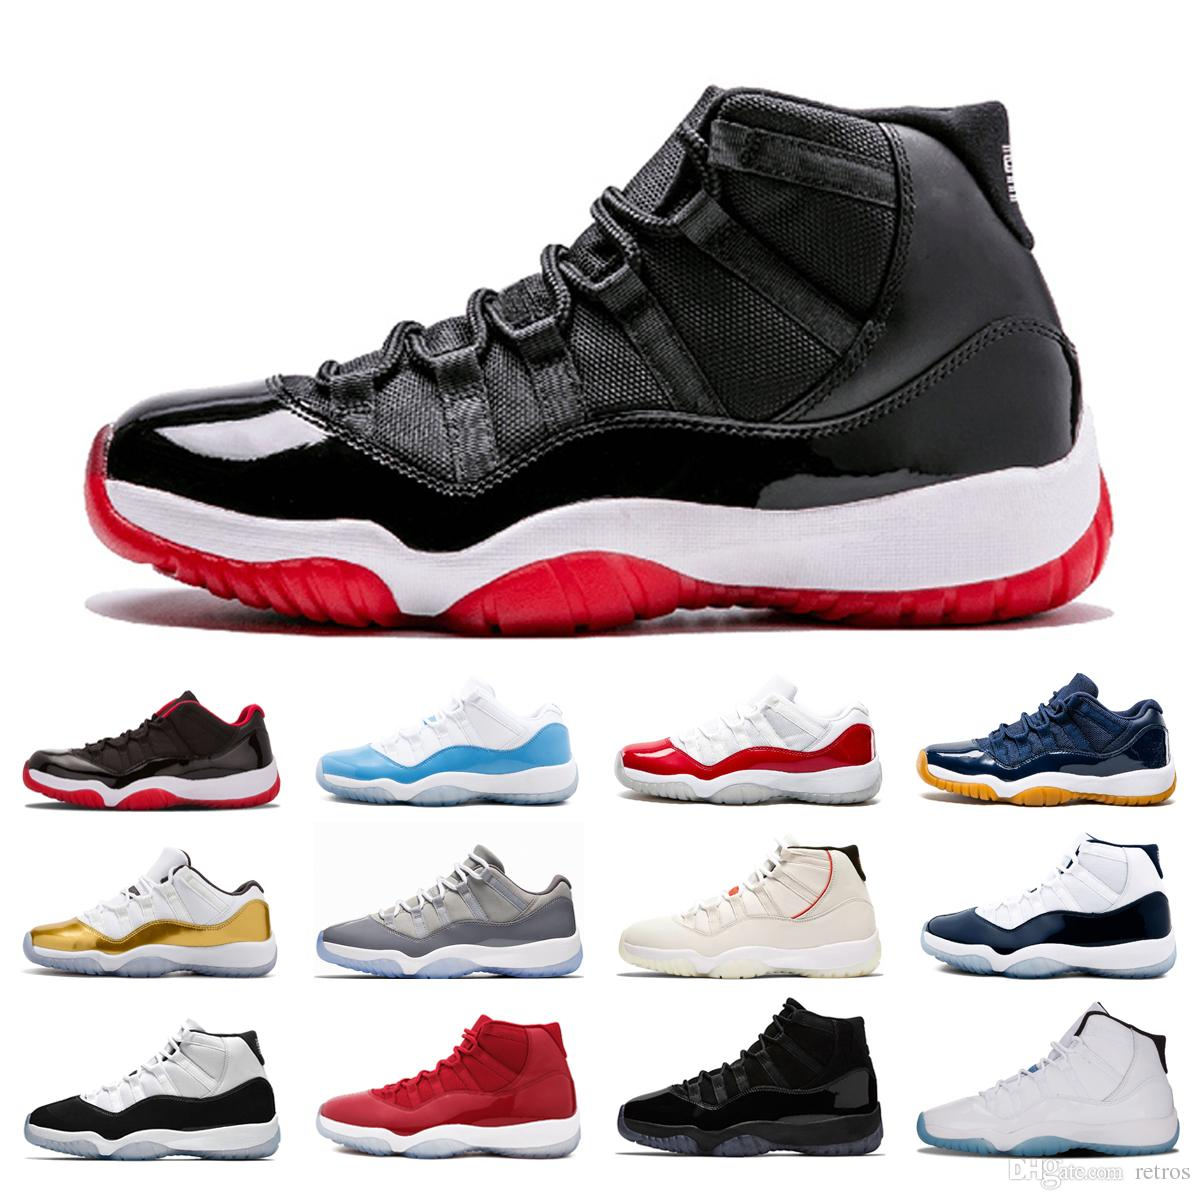 XI 11s bred Concord 45 Platinum Tint Basketball Shoes WIN LIKE 82 96 Cool Grey Legend Blue 72-10 Women men sports Sneakers